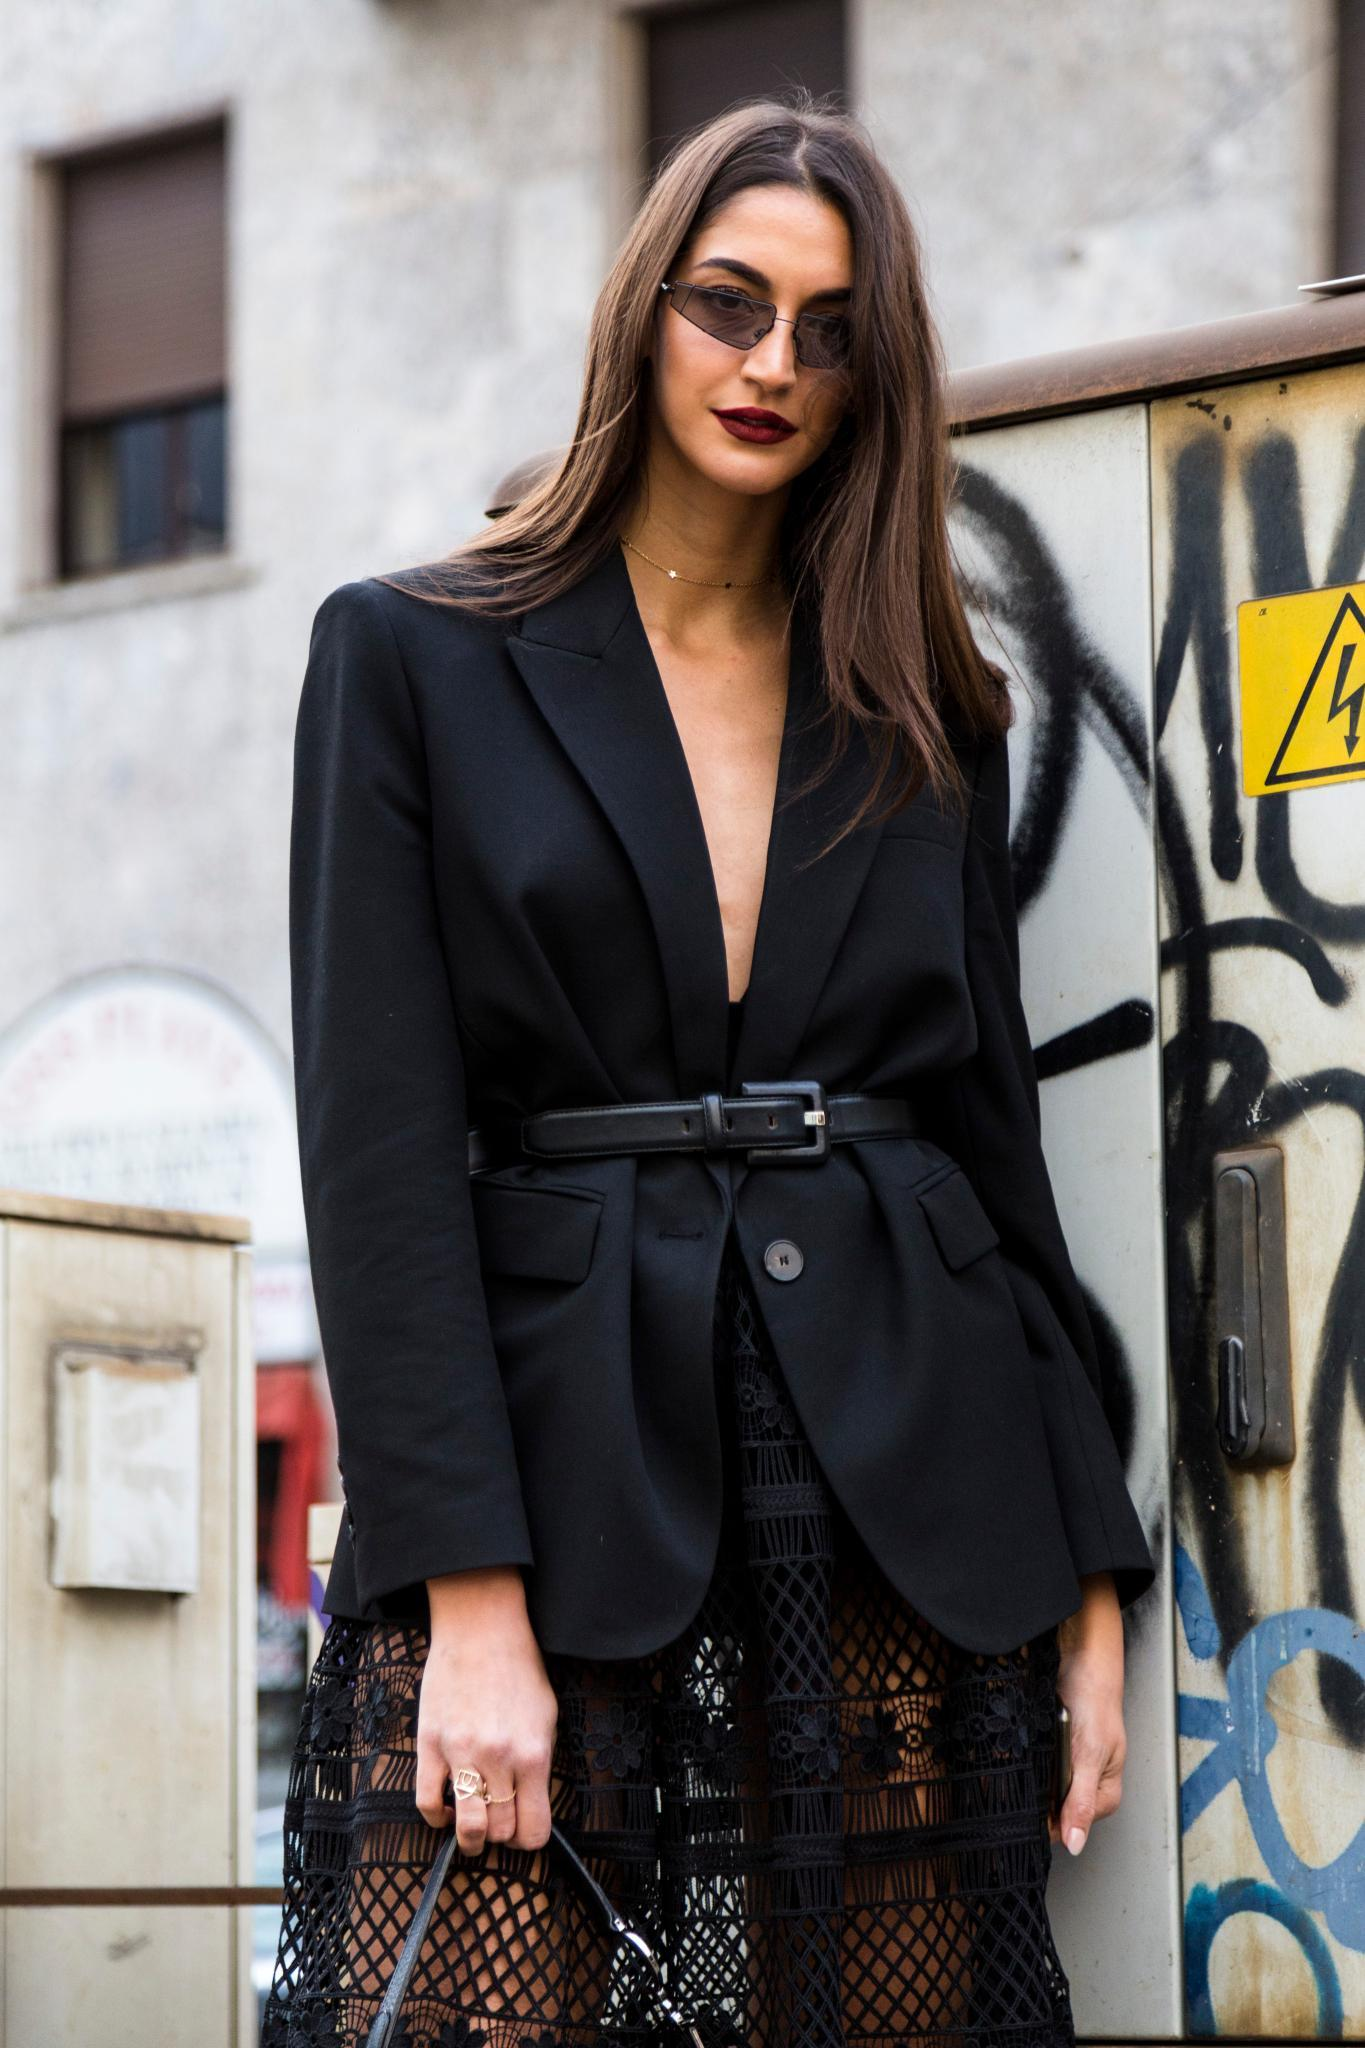 Milan Fashion Week Street Style: Woman with long straight sleek brown hair with long layers wearing black blazer with belt.